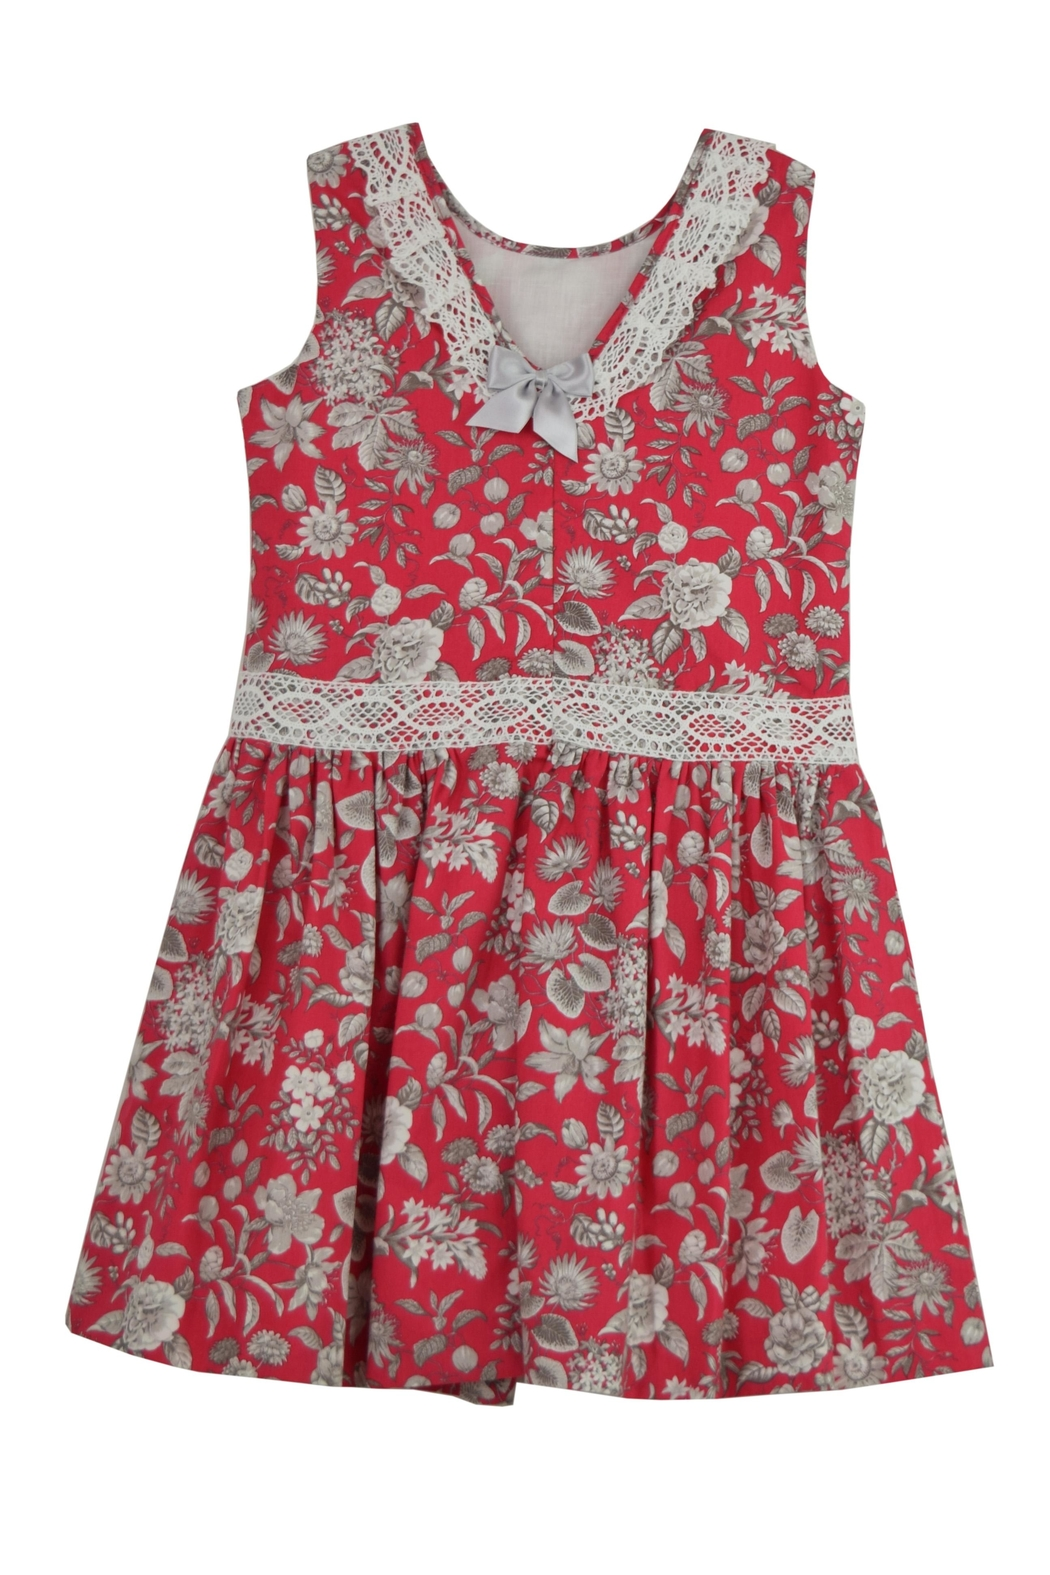 Granlei 1980 Red Floral Dress - Front Full Image